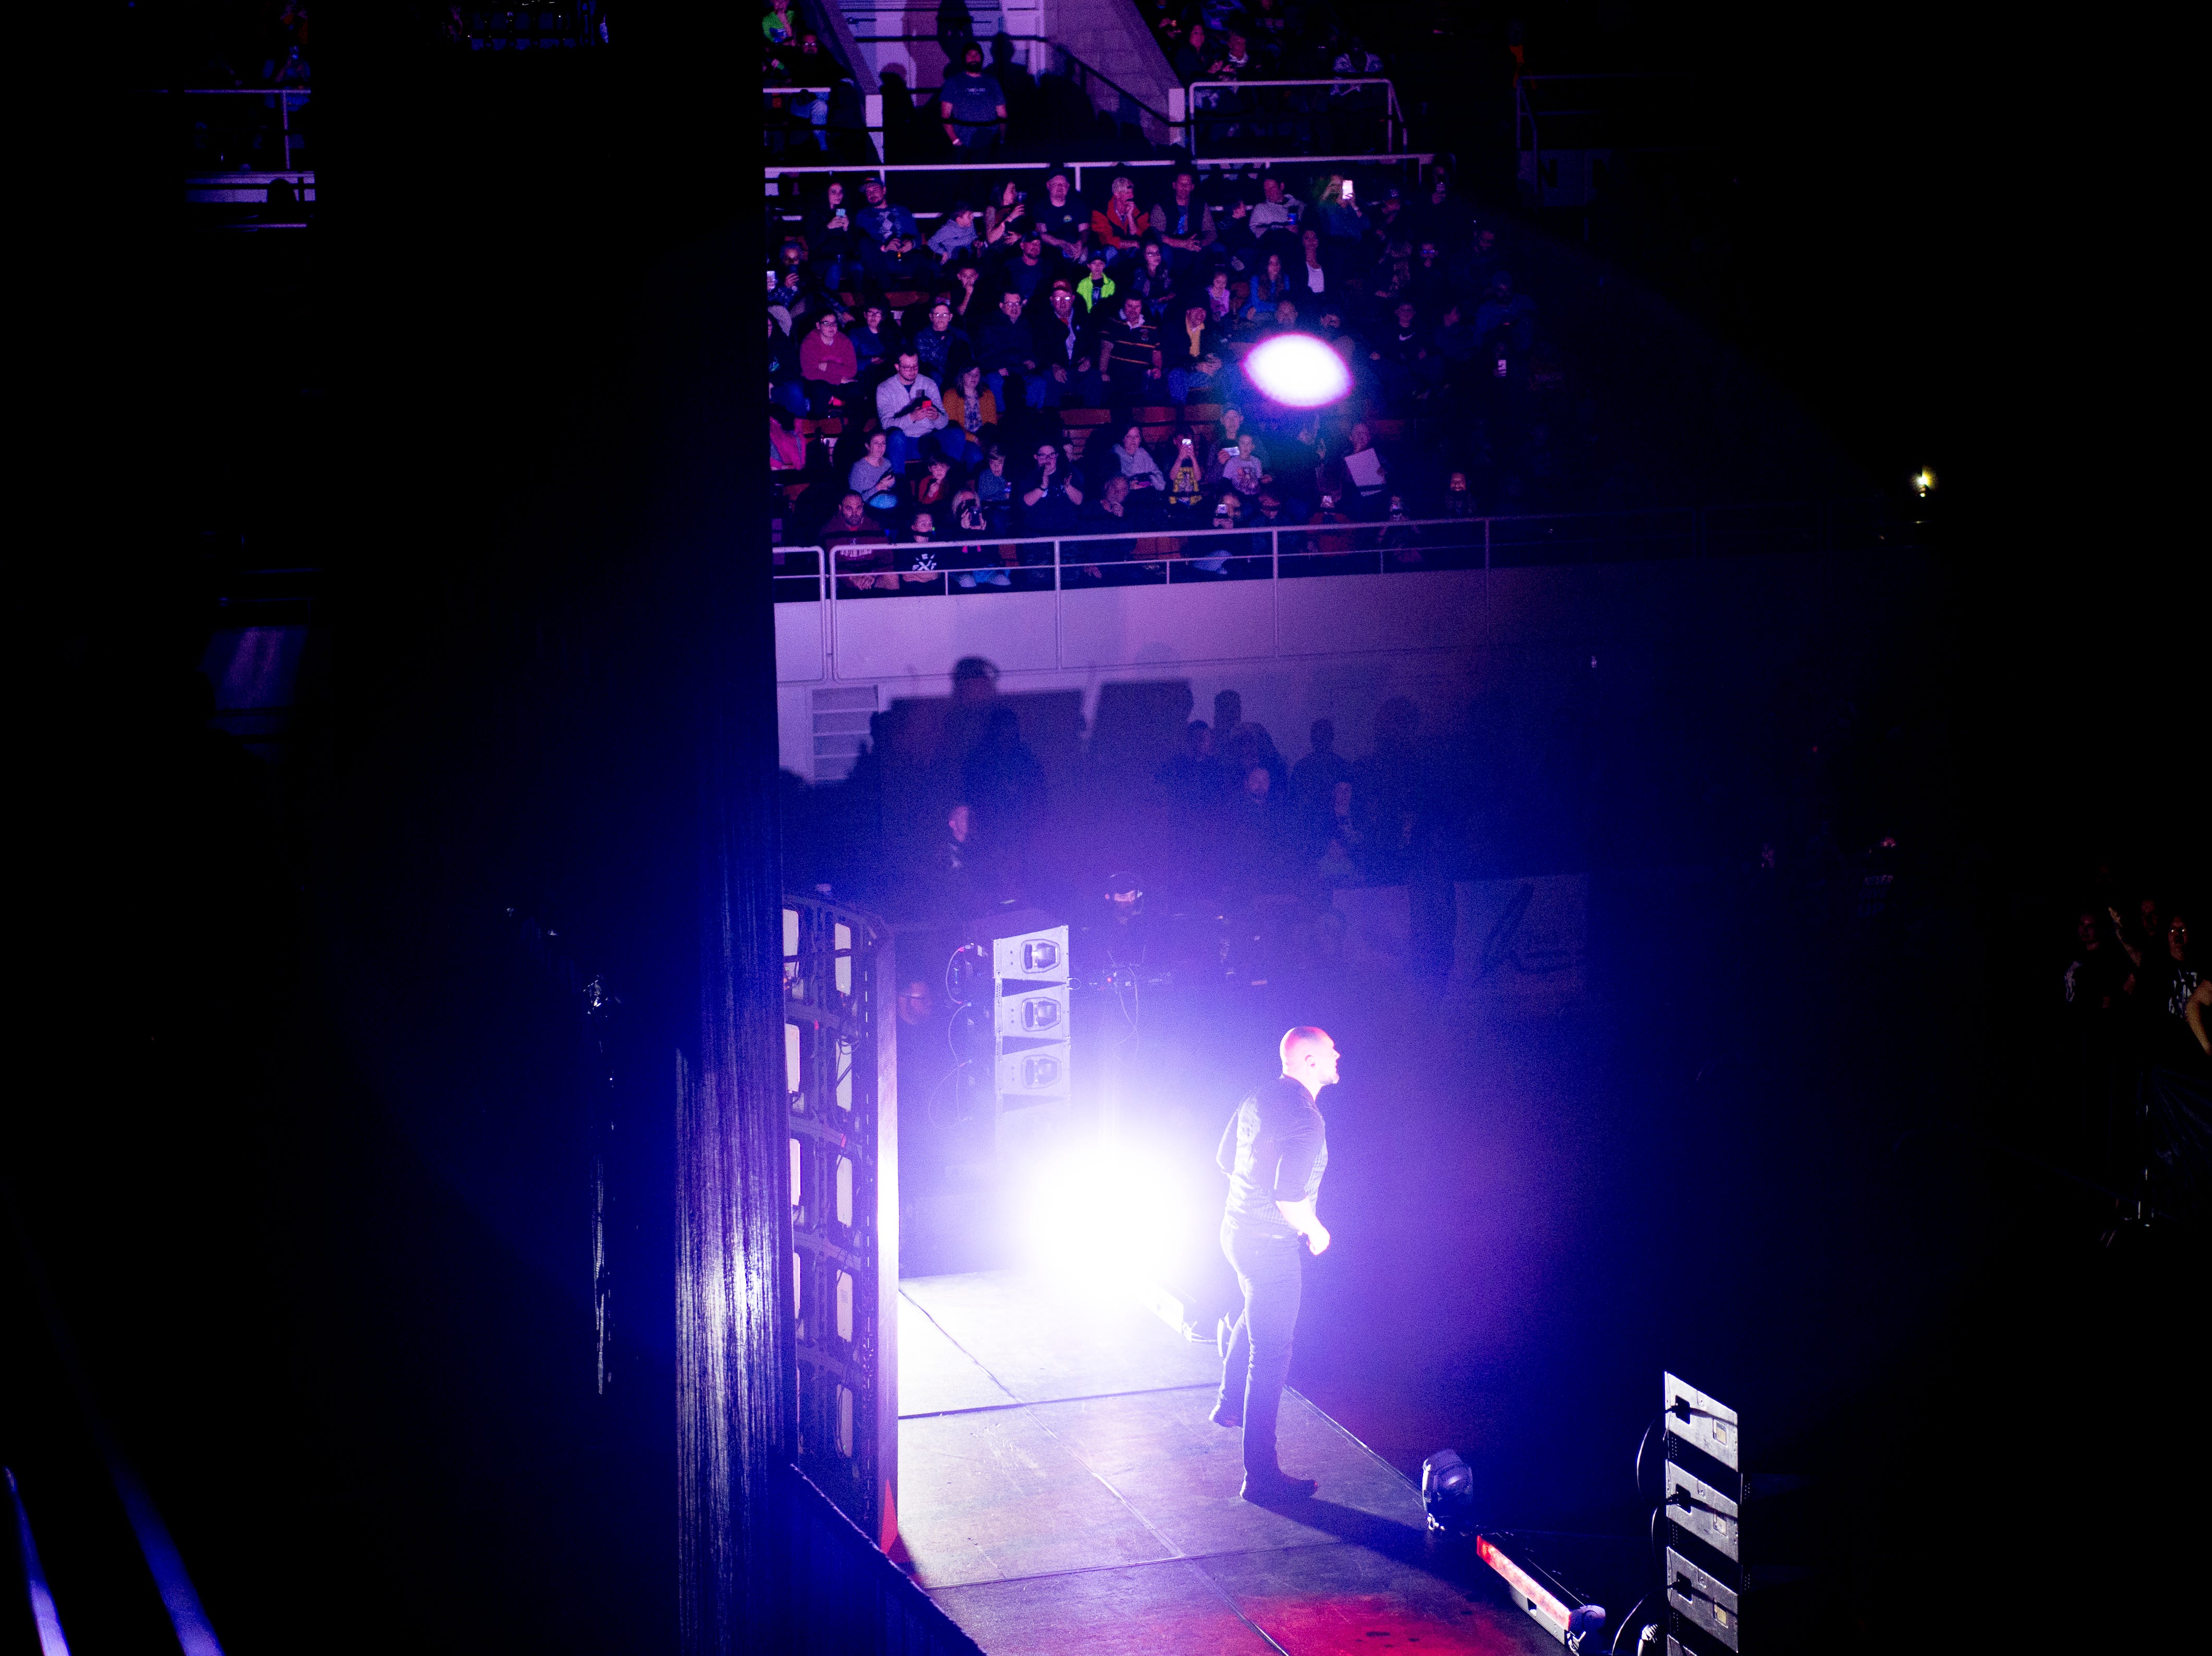 Baron Corbin enters the arena to wrestle John Cena during a WWE Live performance at the Knoxville Civic Coliseum in Knoxville, Tennessee on Saturday, January 12, 2019. *KNOXVILLE NEWS SENTINEL USE ONLY*